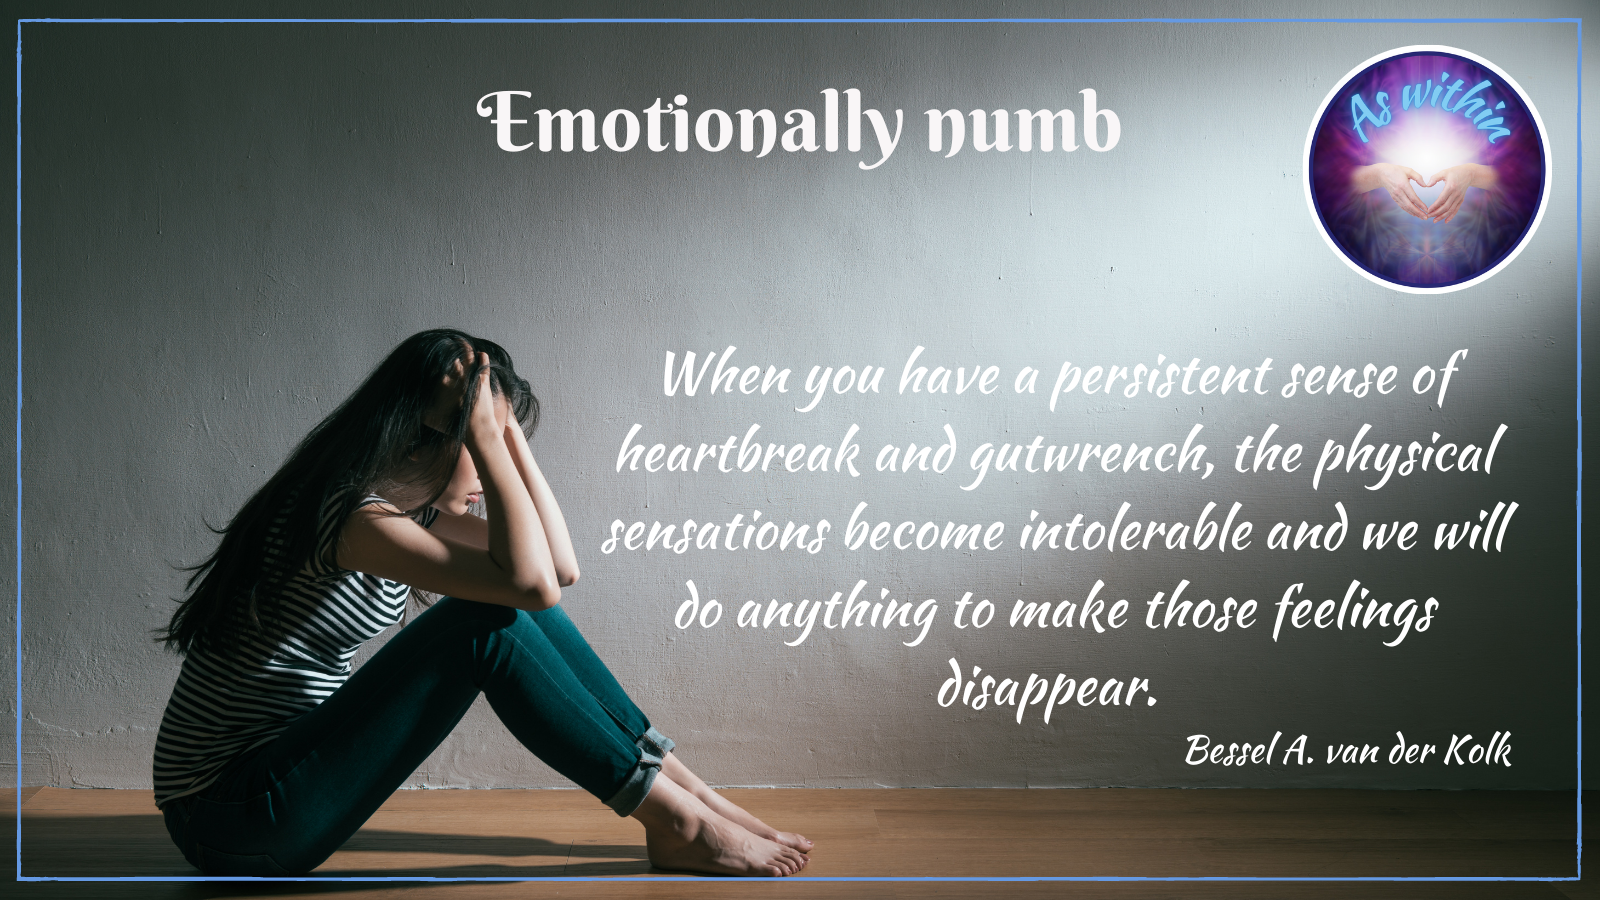 emotionally numb, When you have a persistent sense of heartbreak and gutwrench, the physical sensations become intolerable and we will do anything to make those feelings disappear, Bessel A. van der Kolk, heart of stone, closed-hearted, unfeeling, emotionally unaffected